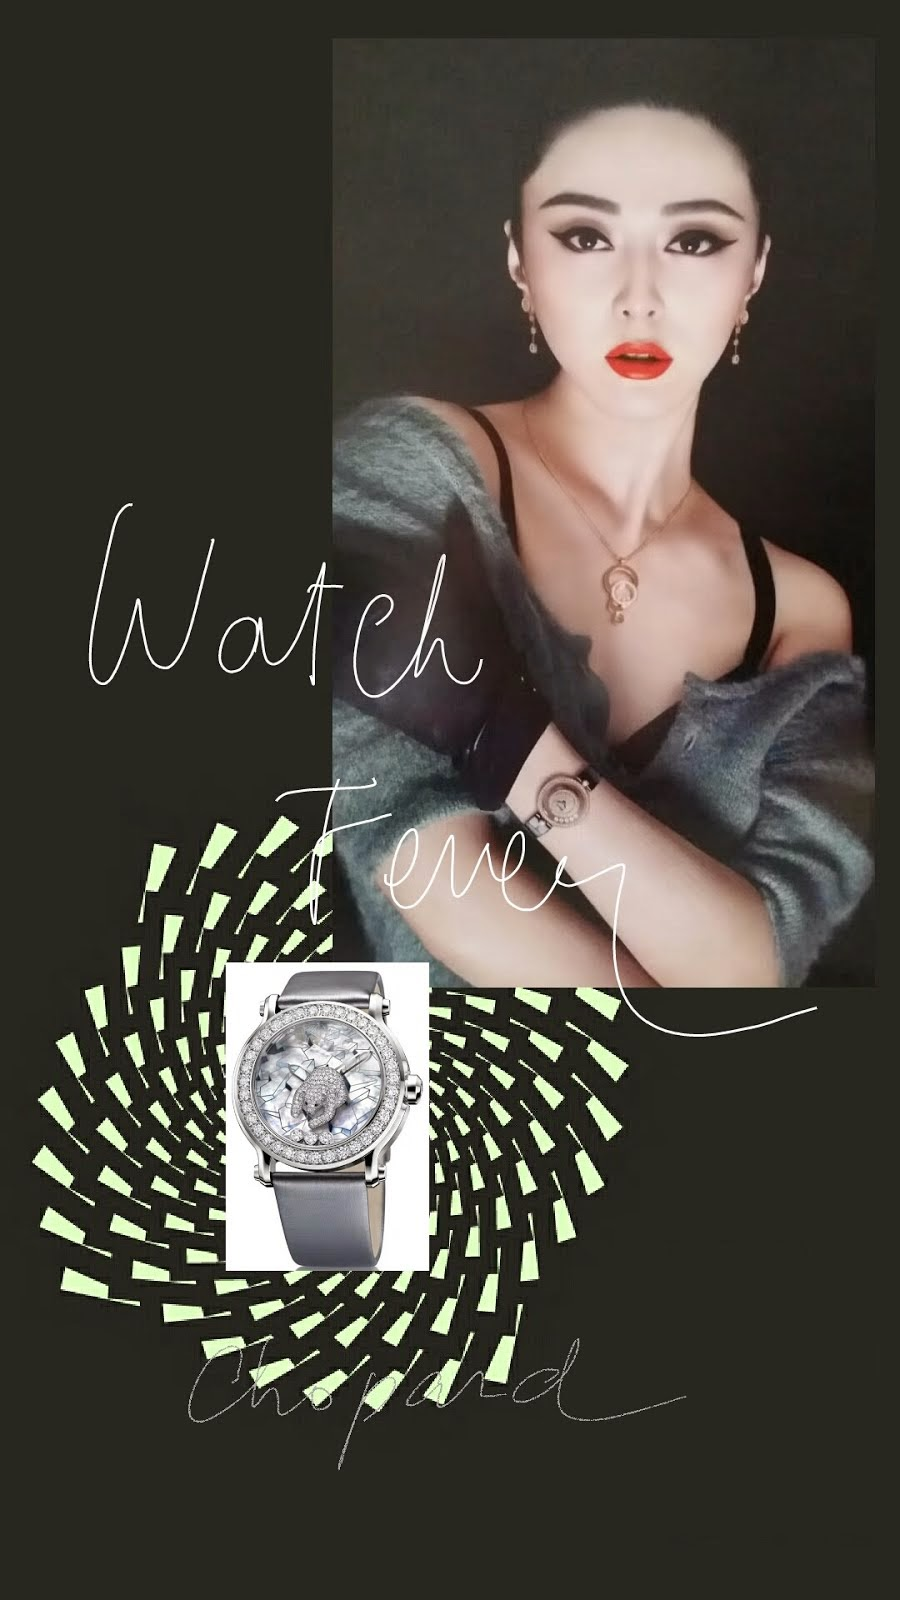 Fan Bing Bing's Chopard